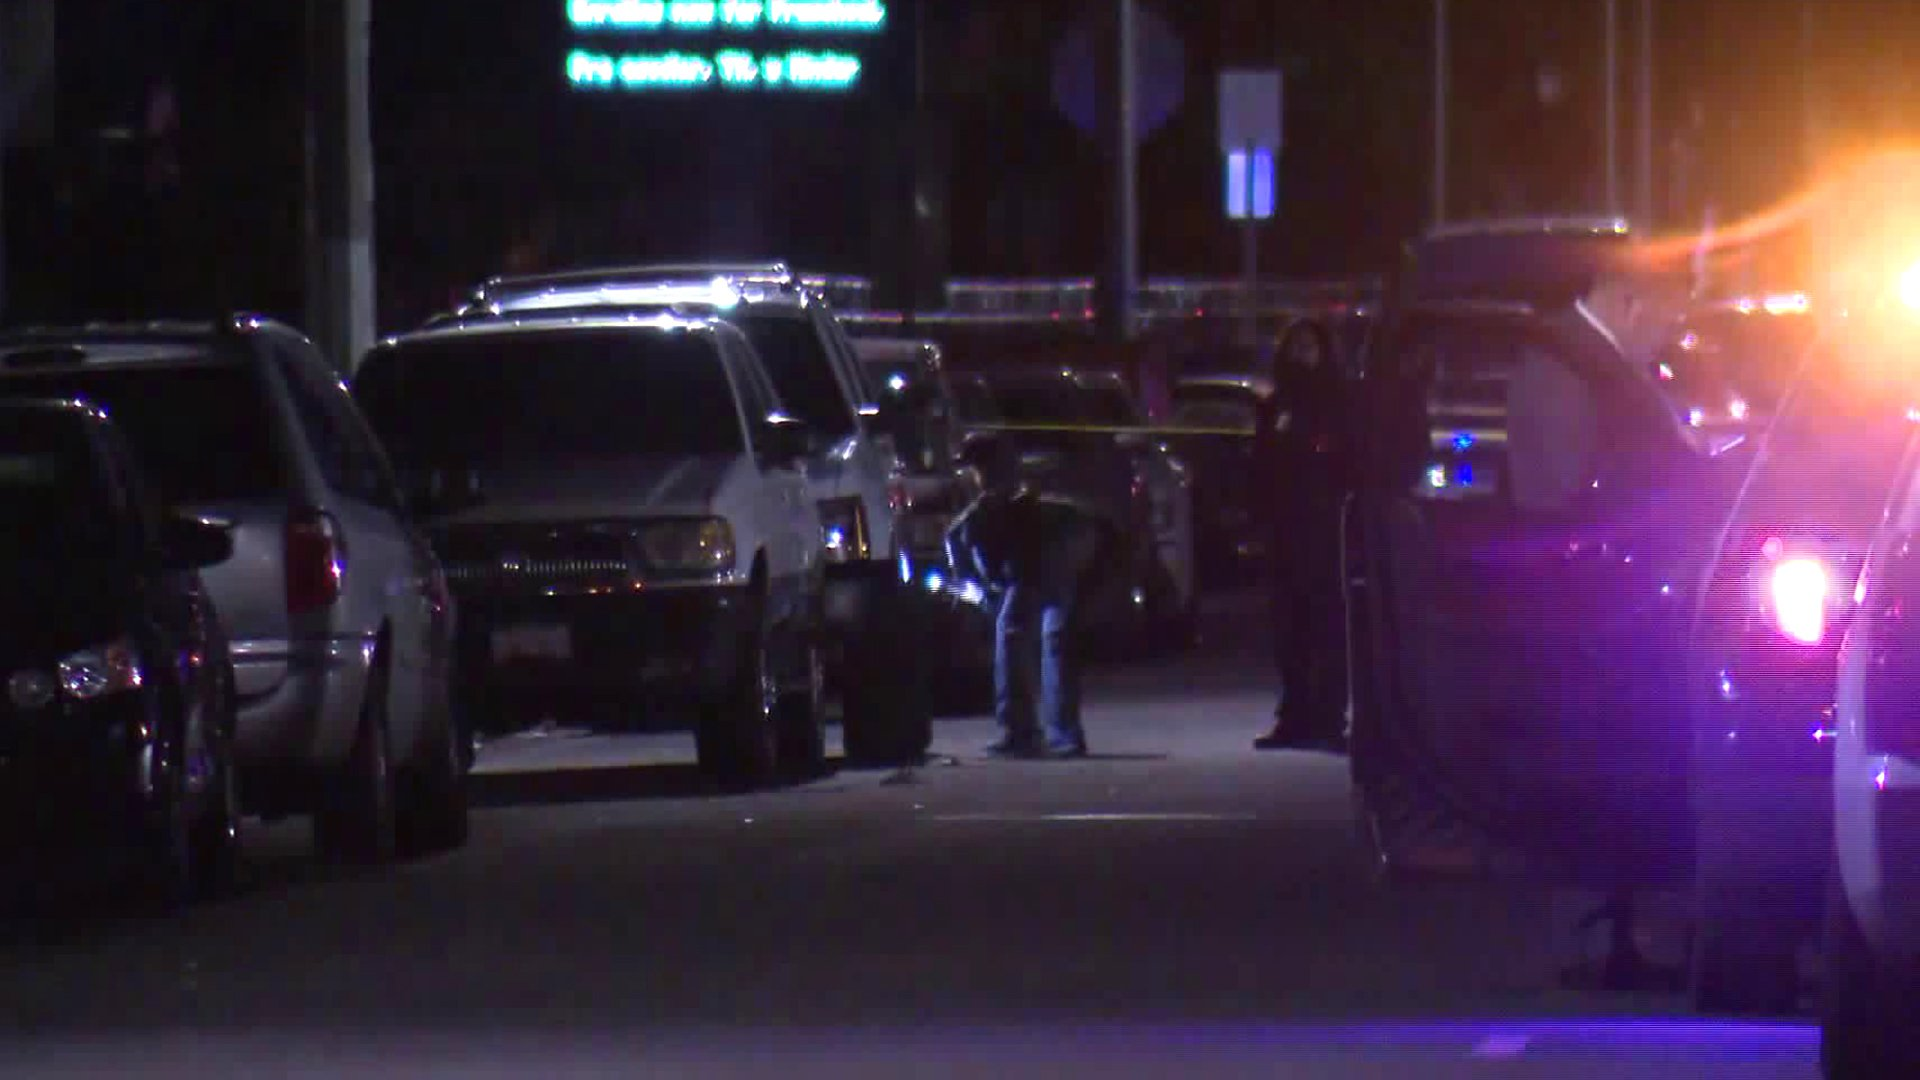 Investigators search for evidence at the scene of a deadly shooting in Lynwood on Jan. 21, 2020. (Credit: KTLA)